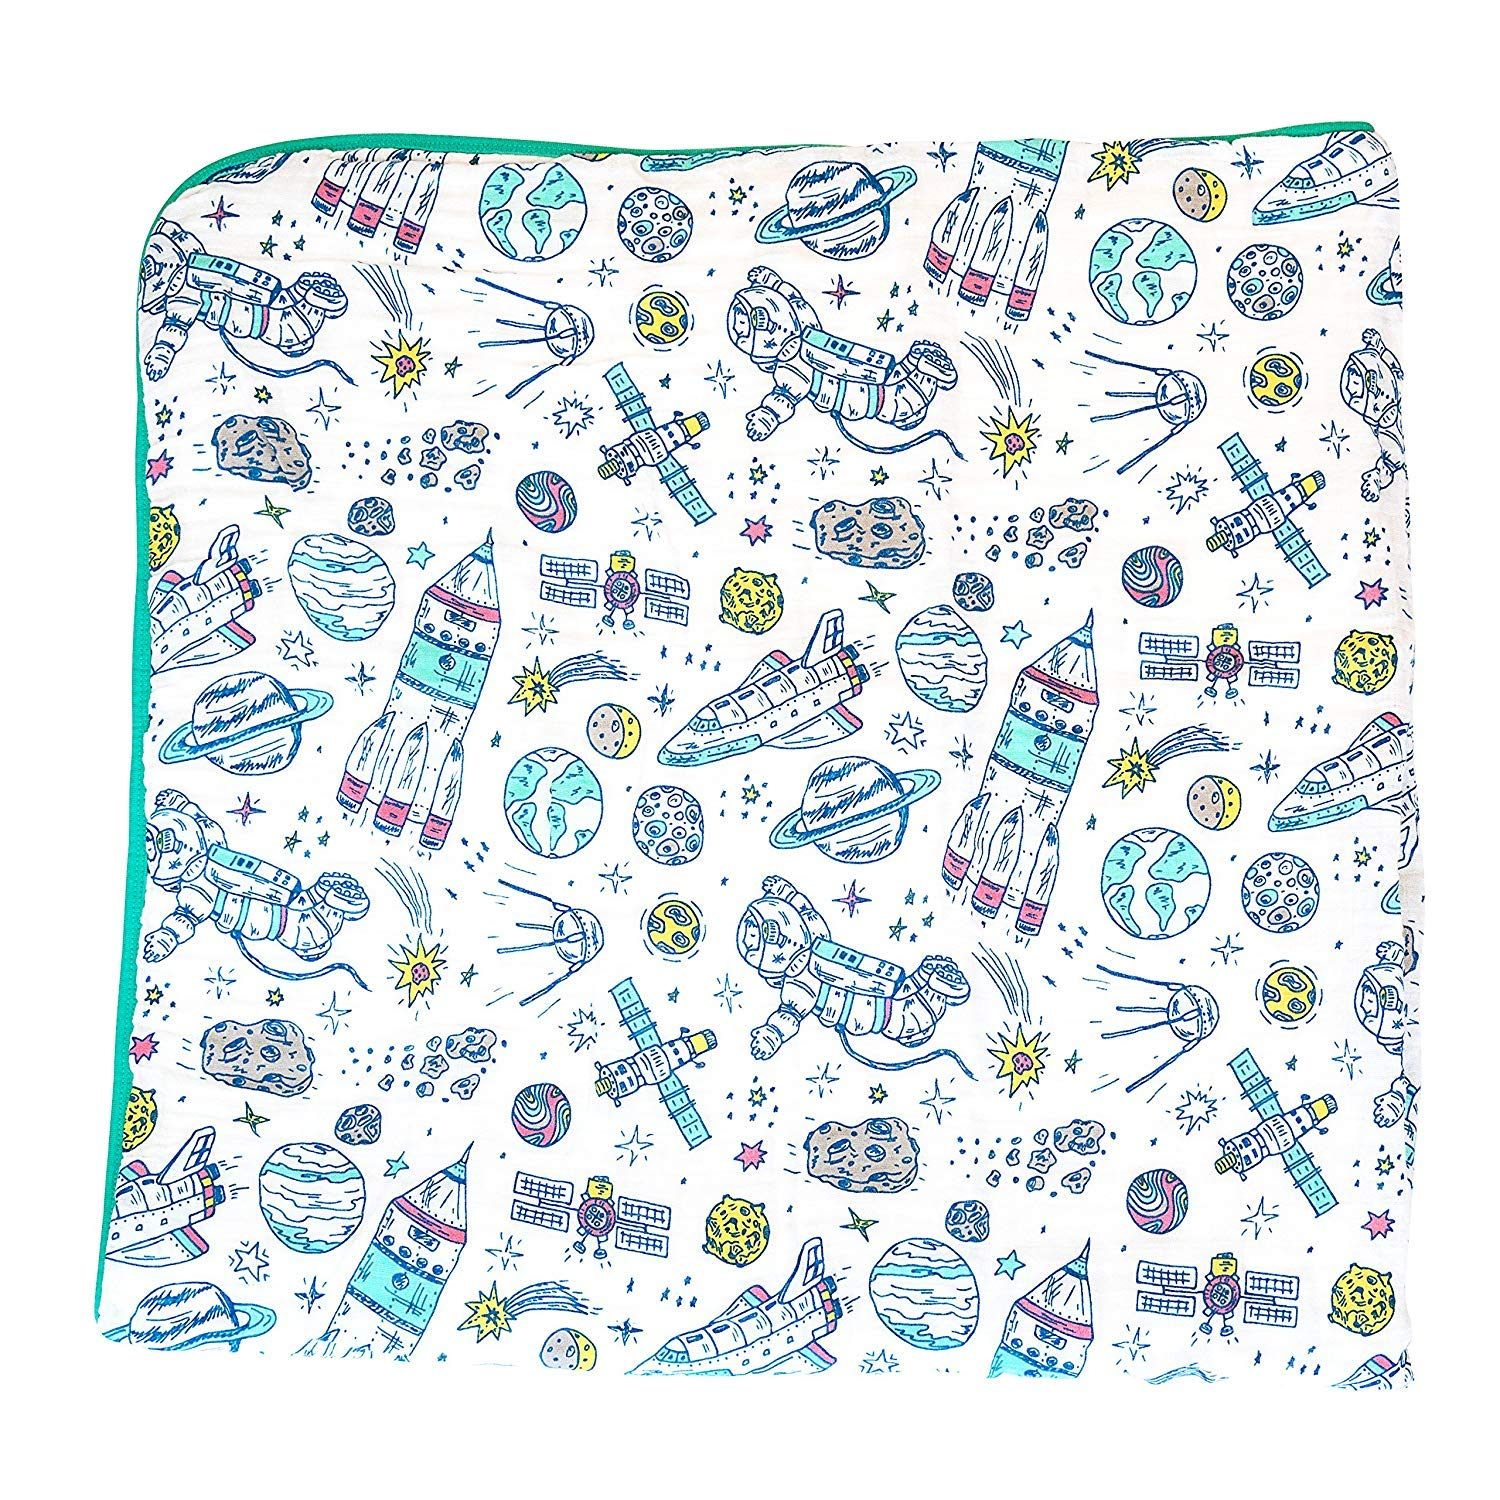 100% Organic Muslin Everything Blanket by ADDISON BELLE - Oversized 47 inches x 47 inches - Best Baby/Toddler Gift - Premium 4 Layer Muslin Blanket/Dream Blanket (Space Print)